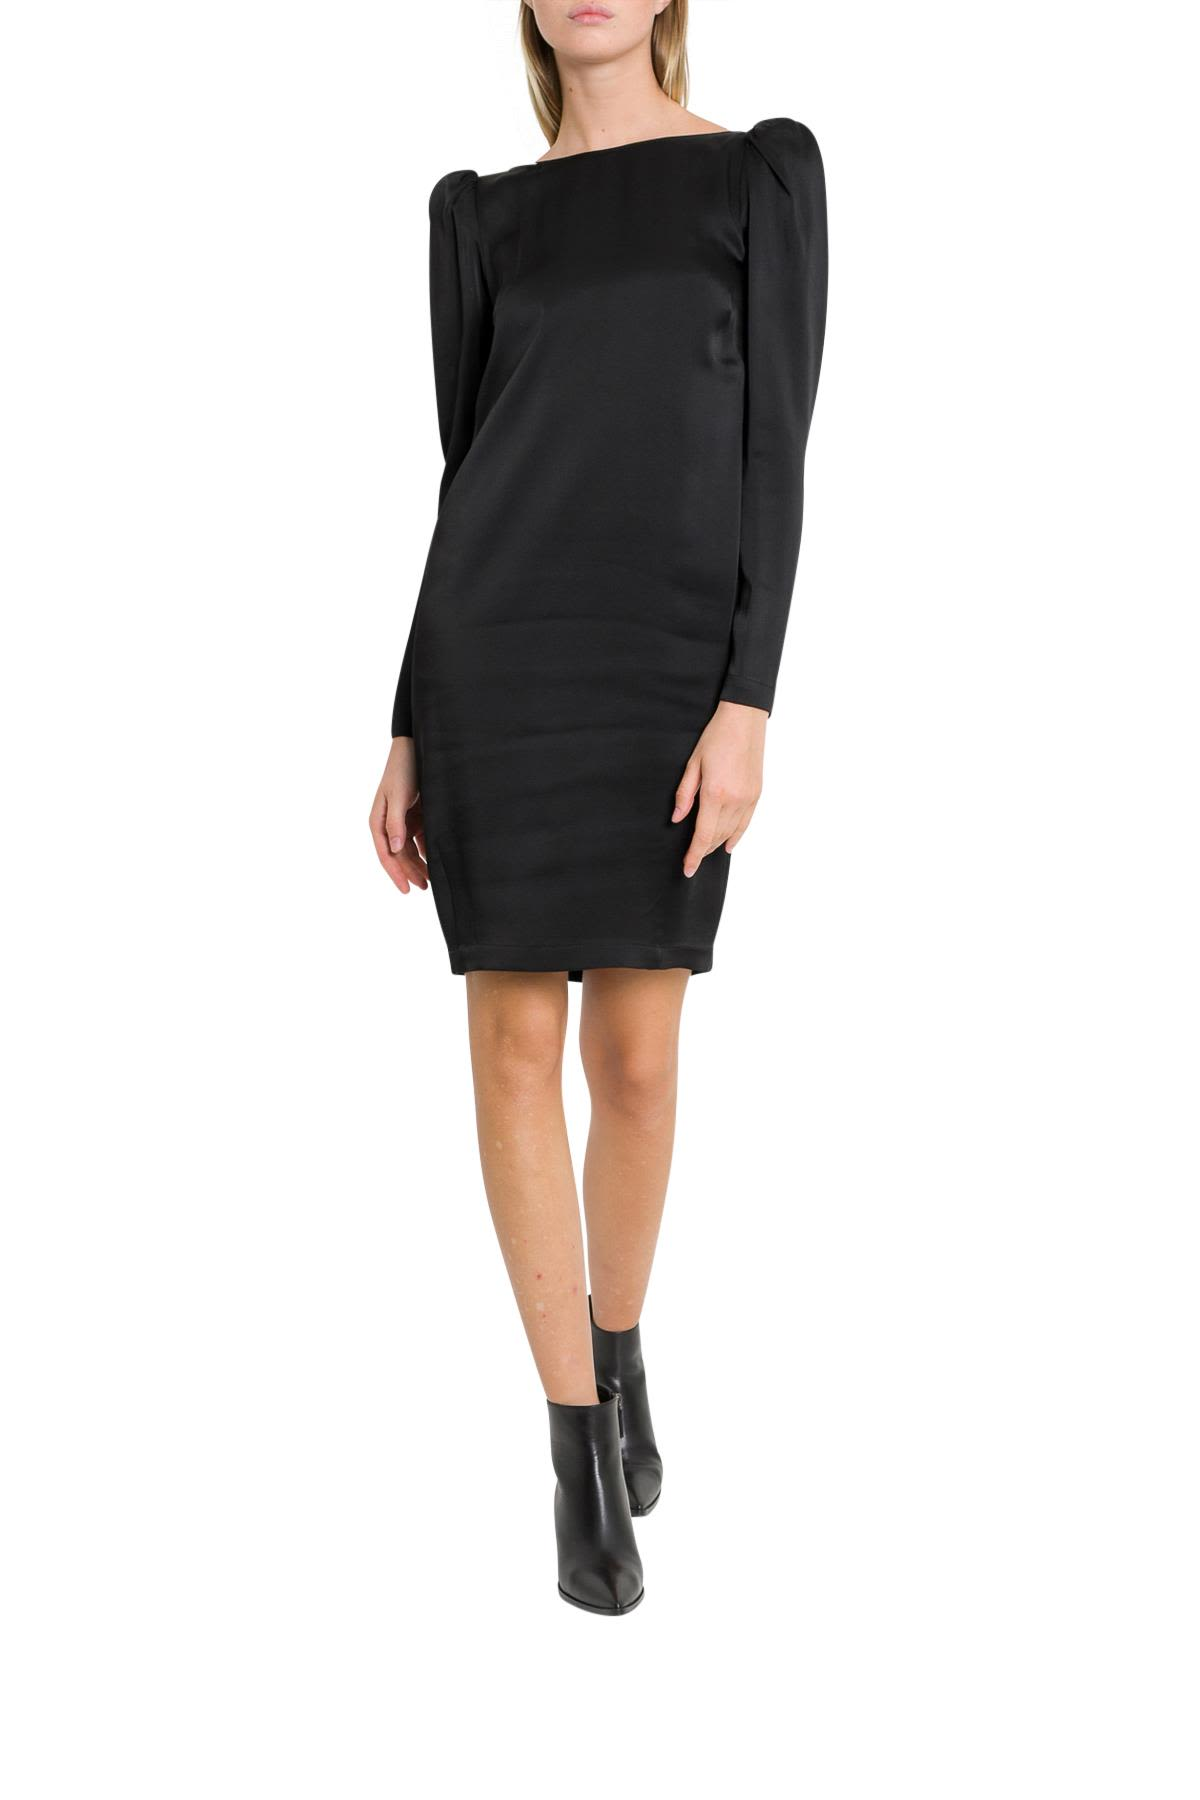 SEMICOUTURE Wright Dress With Shoulder Padded And Dipped Back